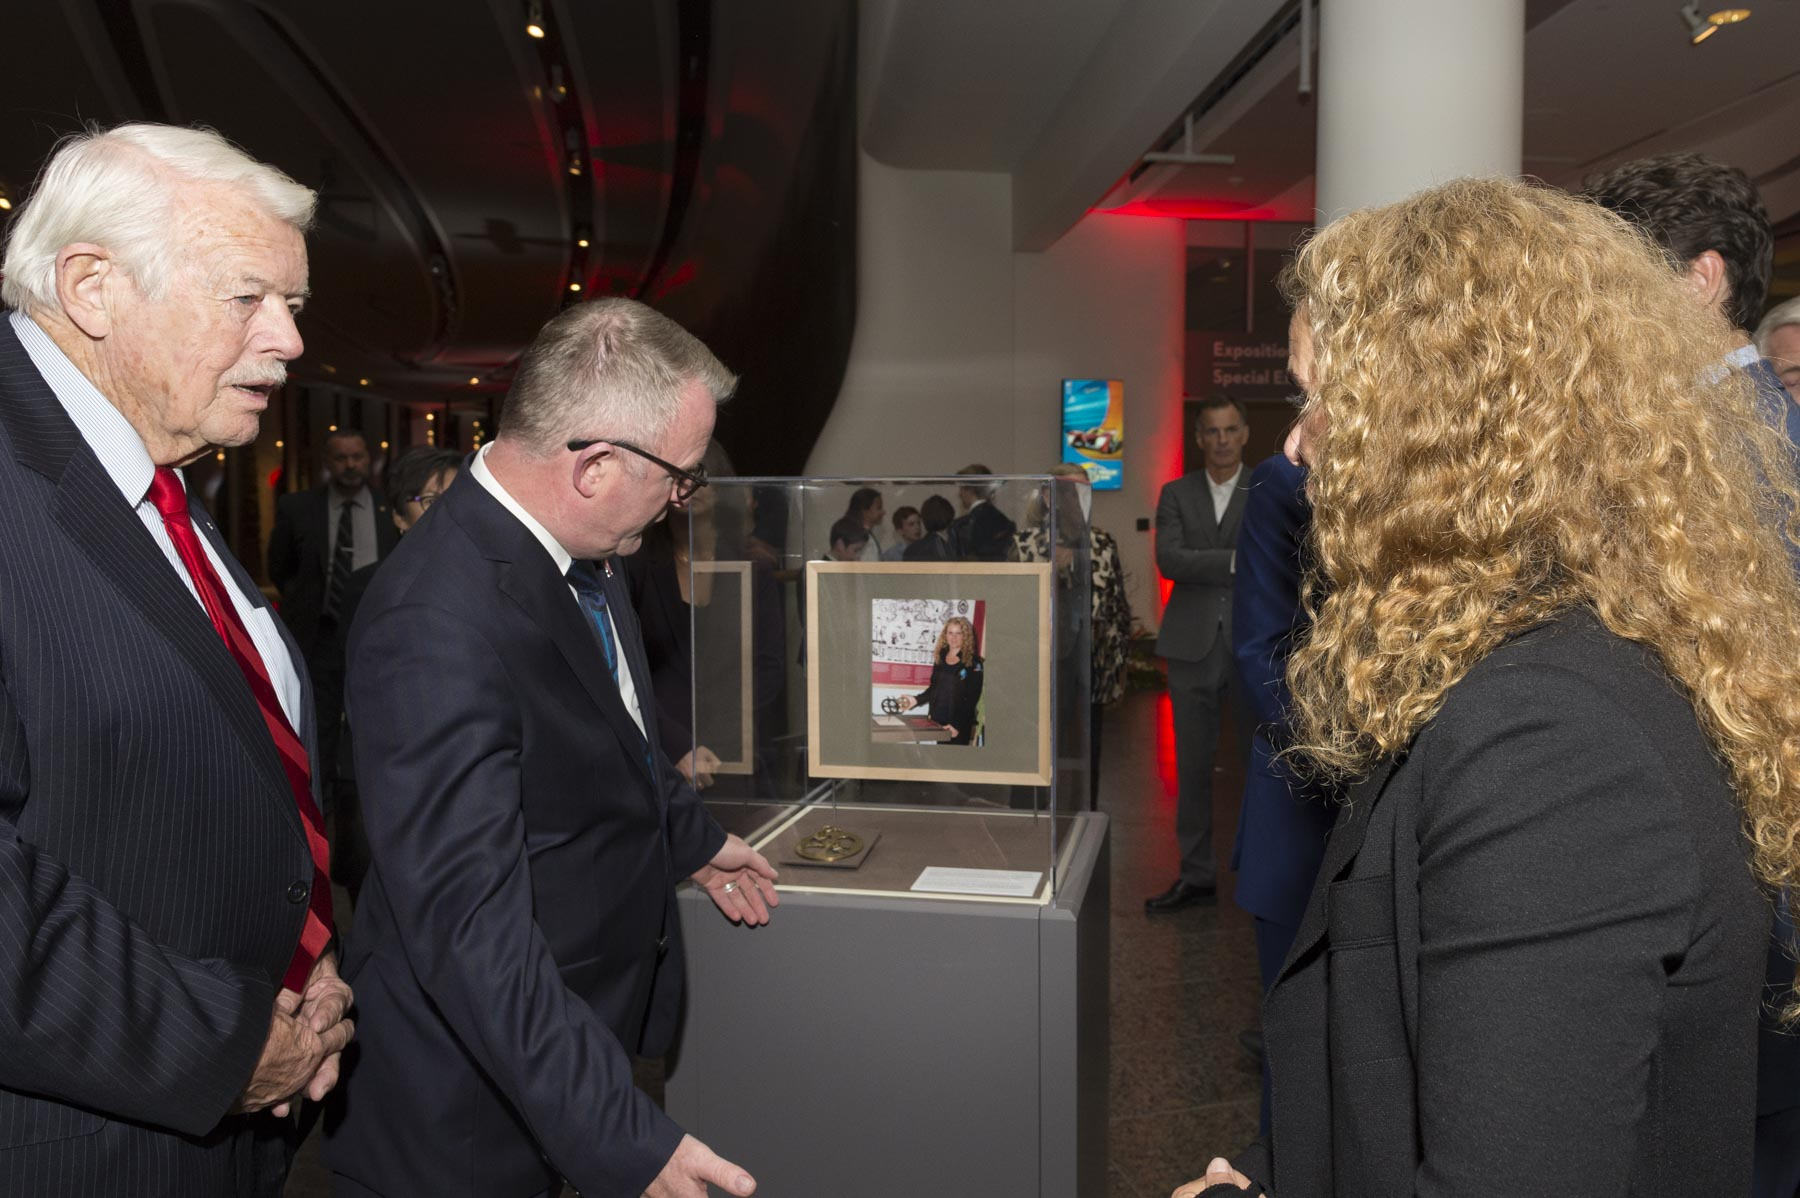 Inside the Canadian Museum of History, Her Excellency was shown one of the replica of the astrolabe, a well-known emblem of Canada's heritage, that she brought with her inside the Space Shuttle Endeavour on July 15, 2009. The successful mission delivered critical supplies to the Space Station and installed a new laboratory platform for scientific experiments.